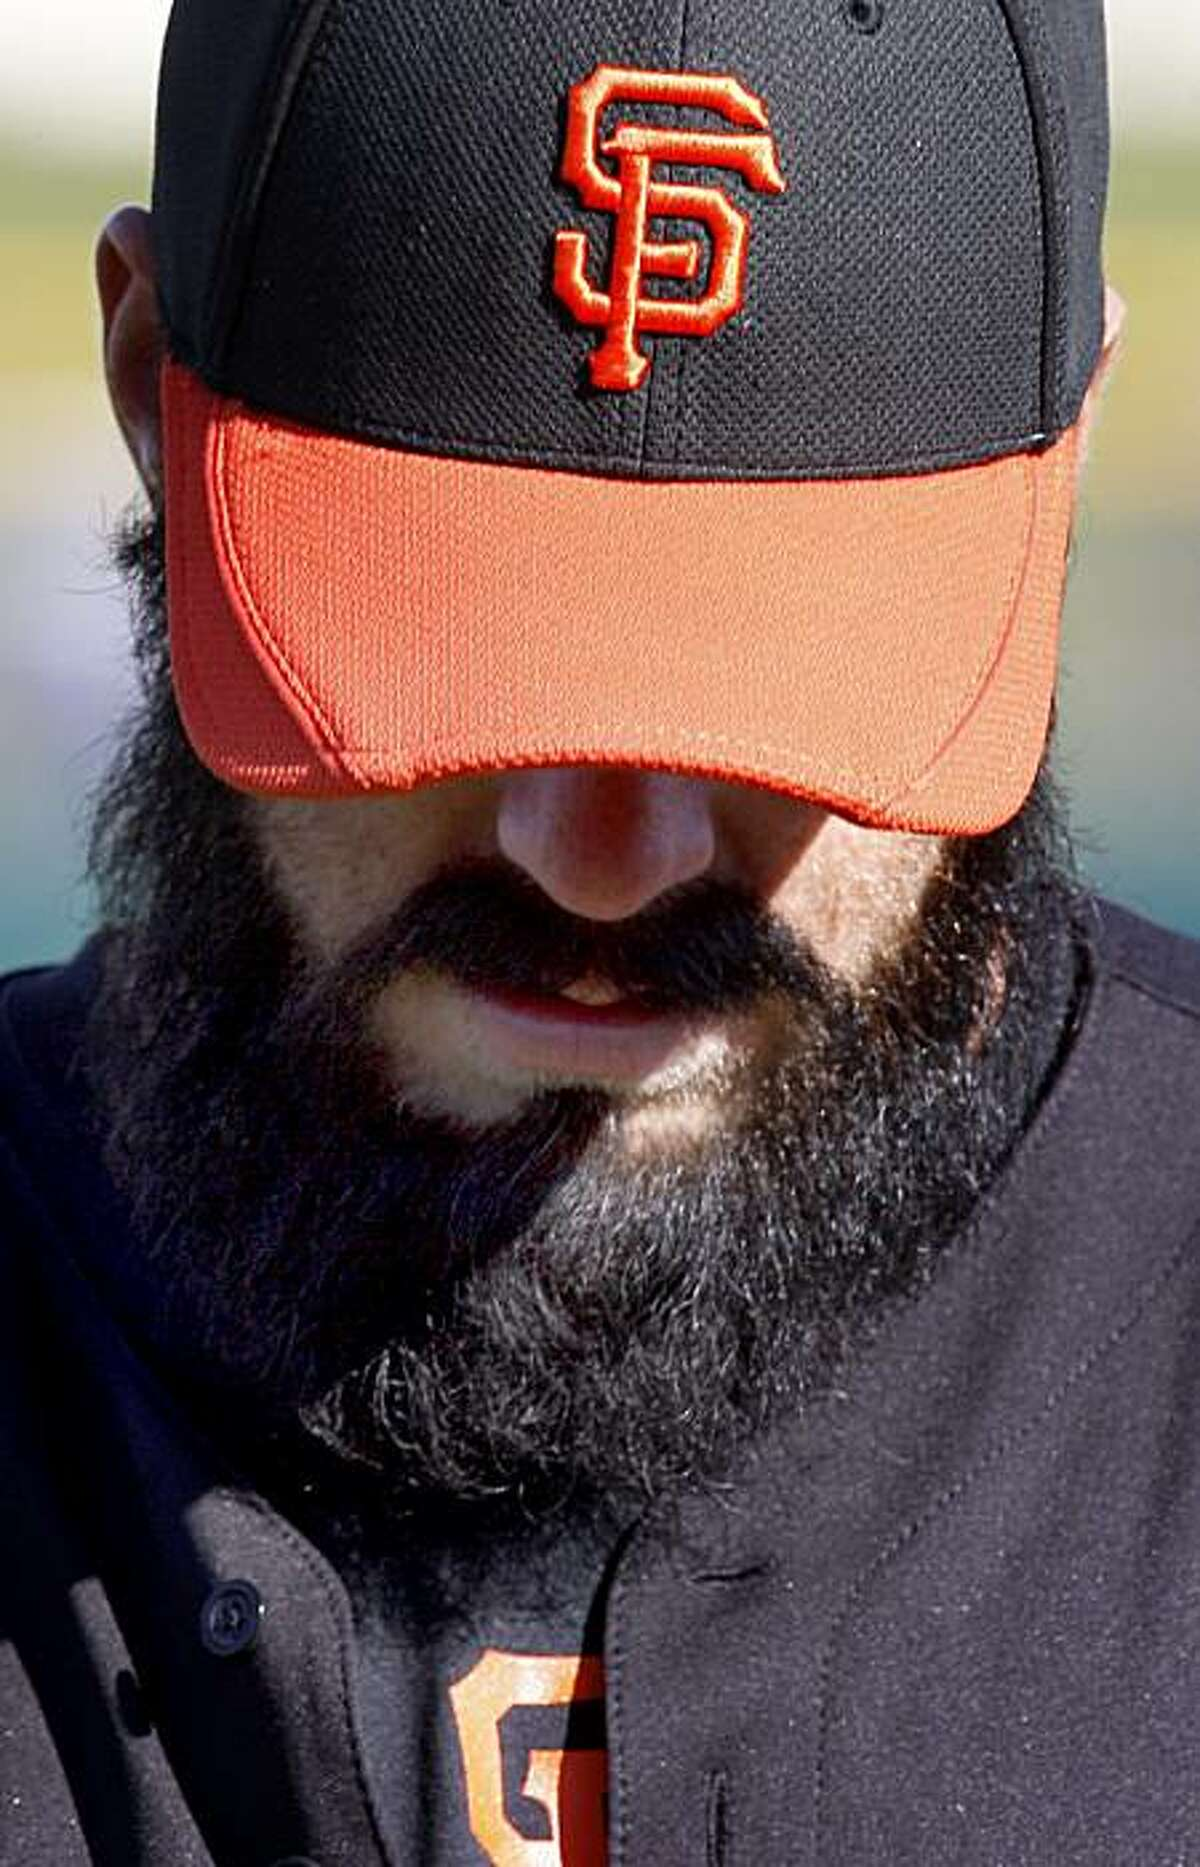 That is Brian Wilson underneath the hat and beard. The San Francisco Giants held their second workout of the spring training season at Scottsdale Stadium in Arizona Wednesday February 16, 2011.